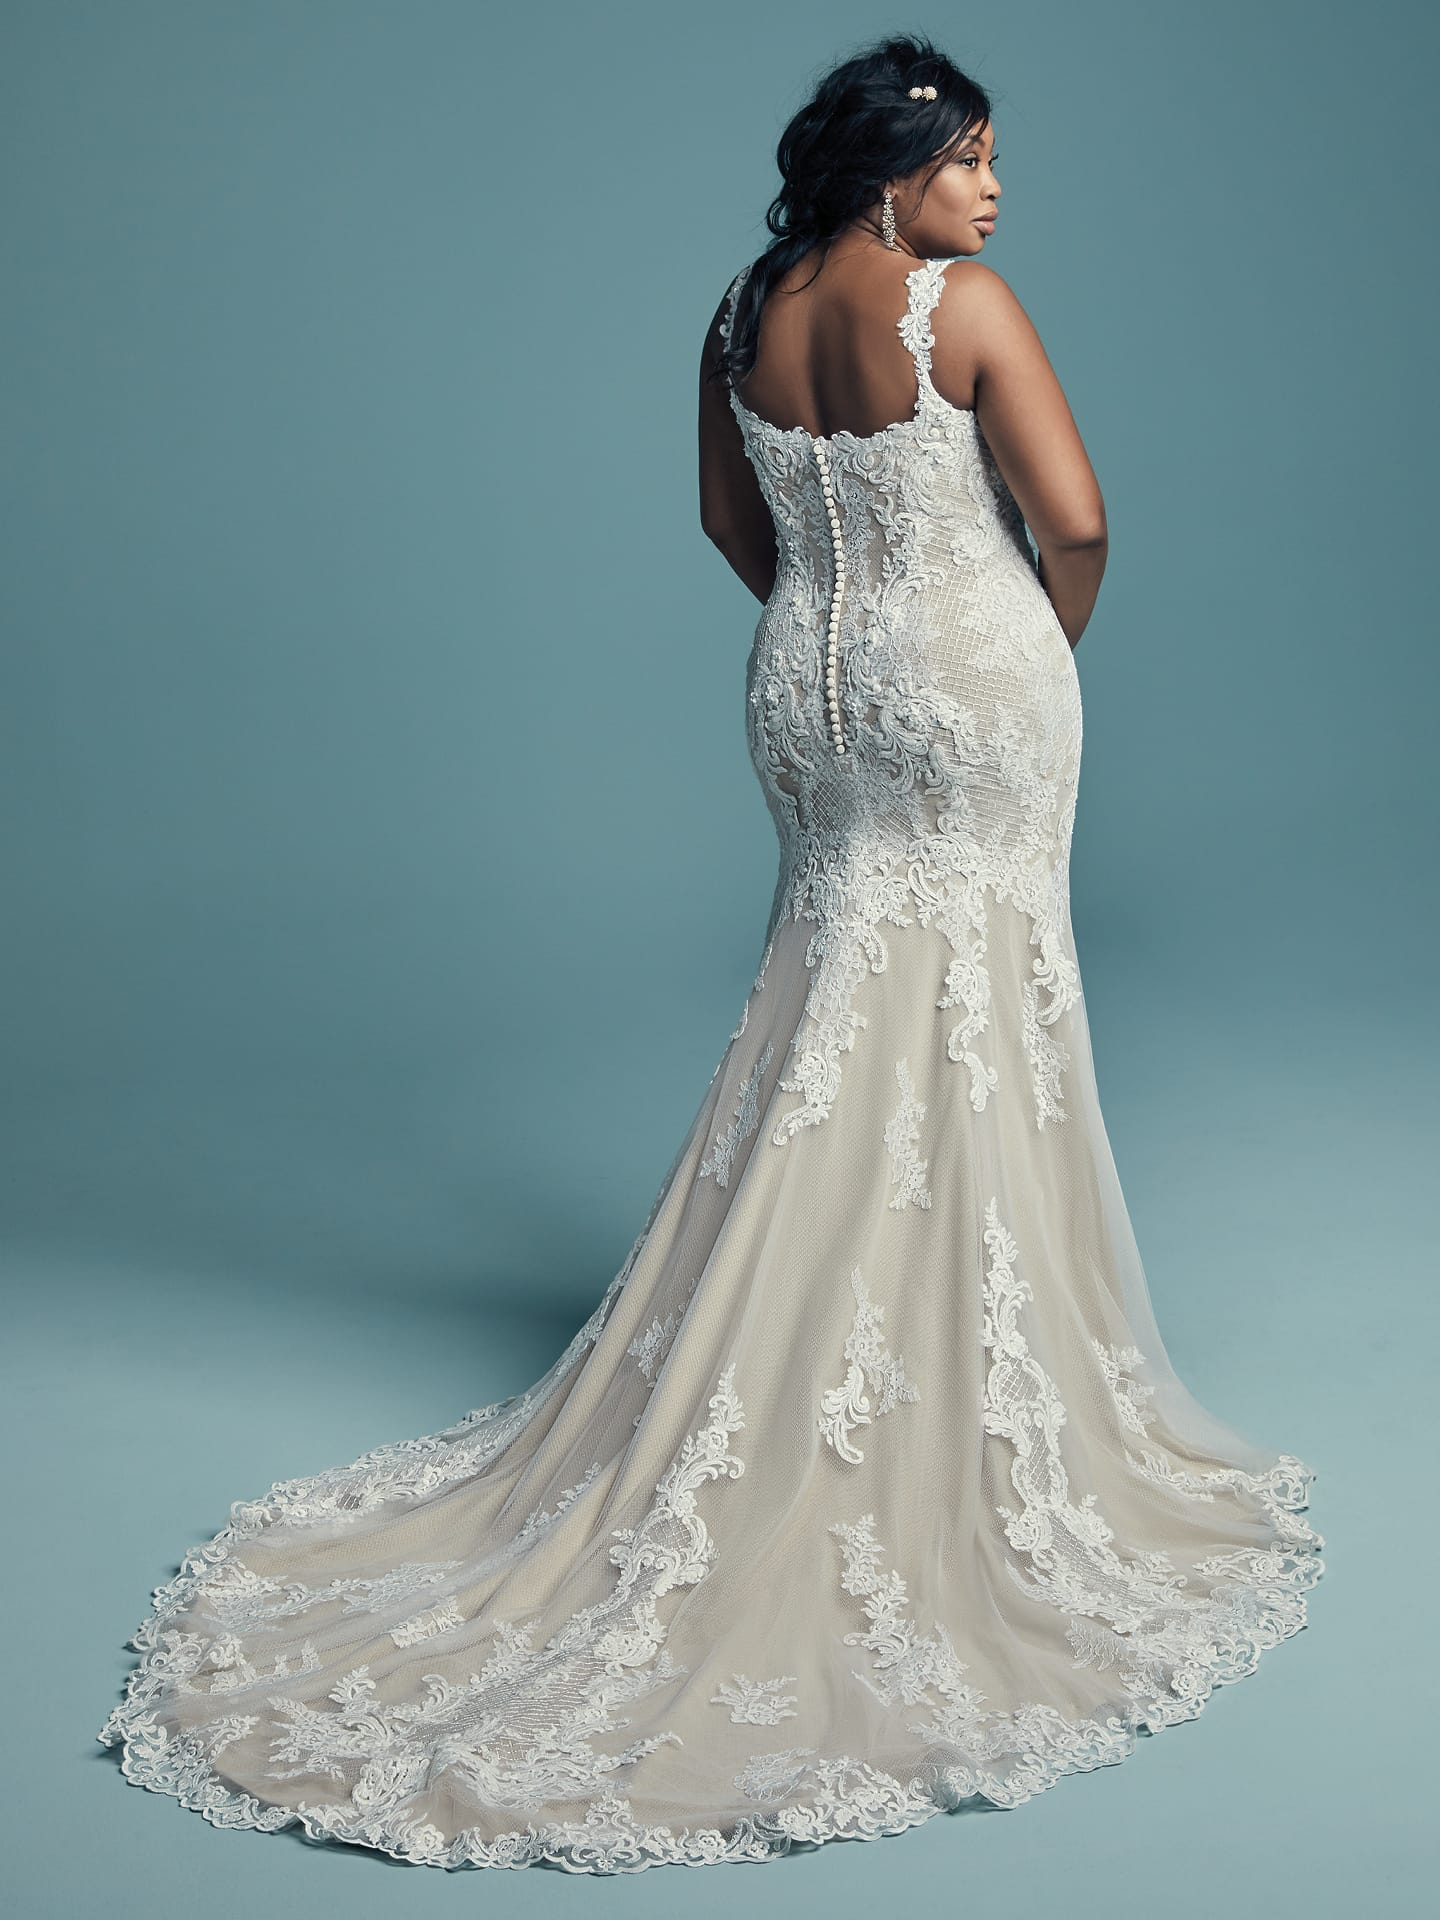 Flattering Wedding Dresses for Curvy Brides - Abbie Lynette by Maggie Sottero